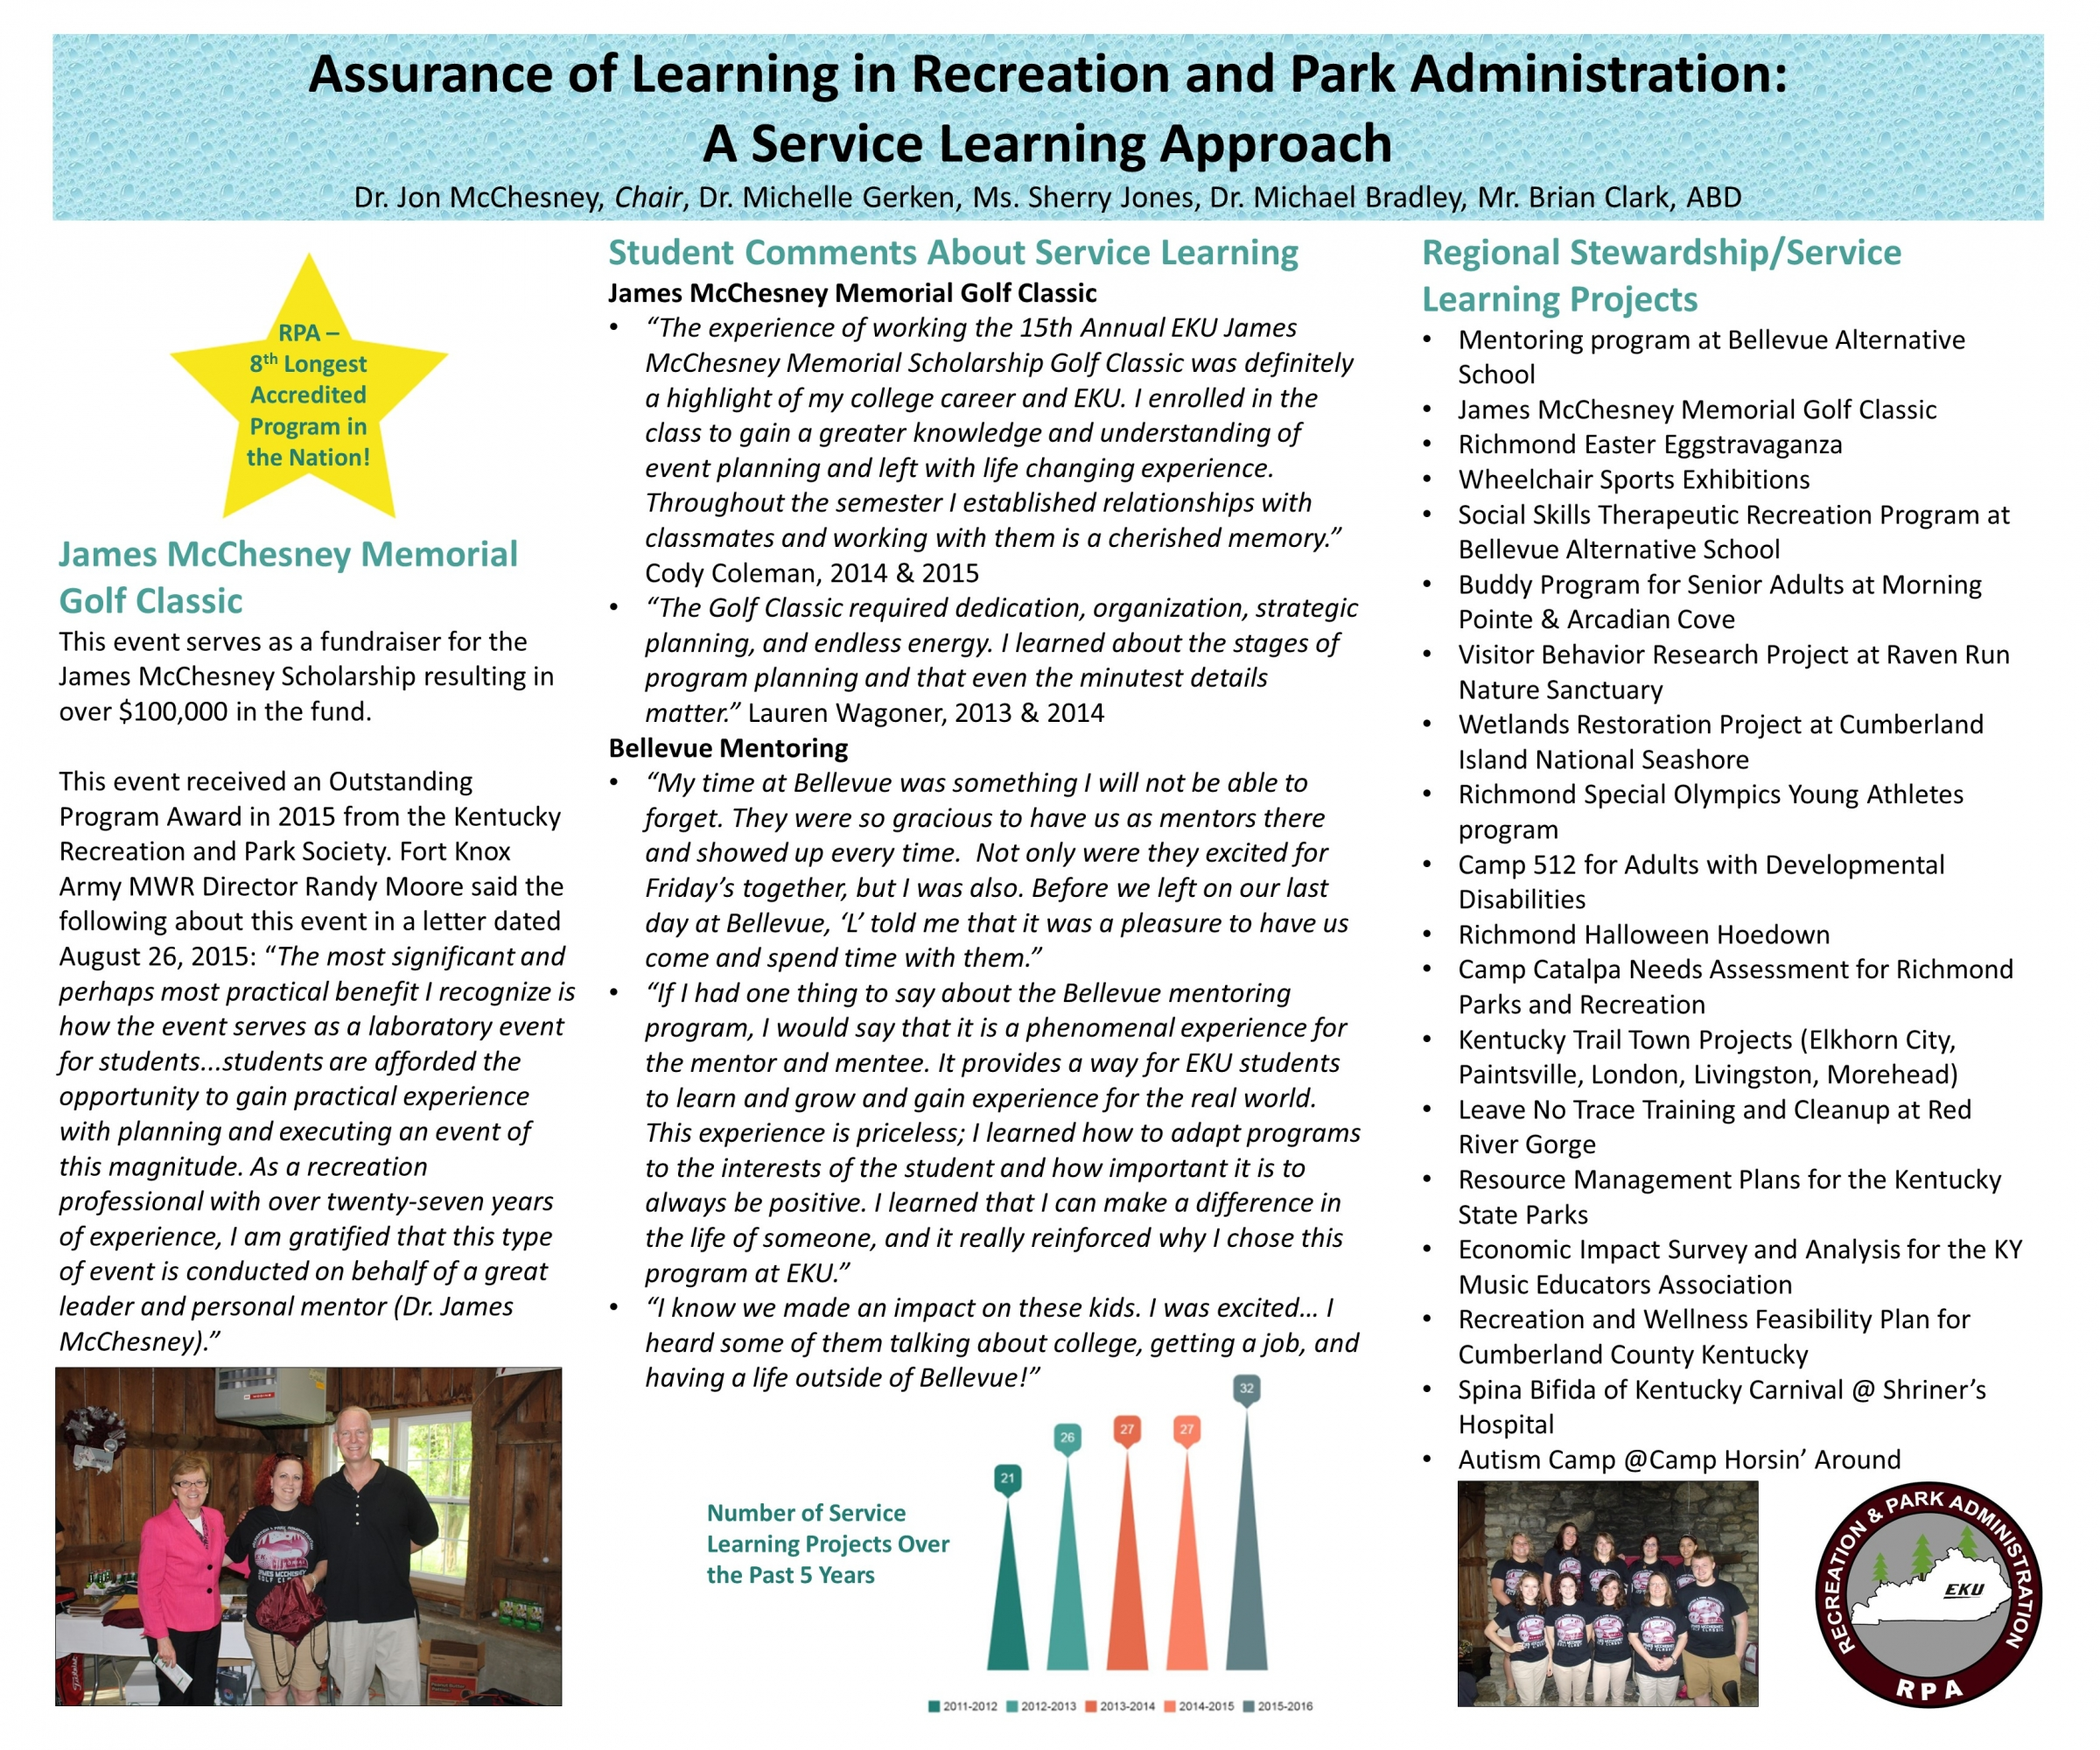 Recreation and Park Administration